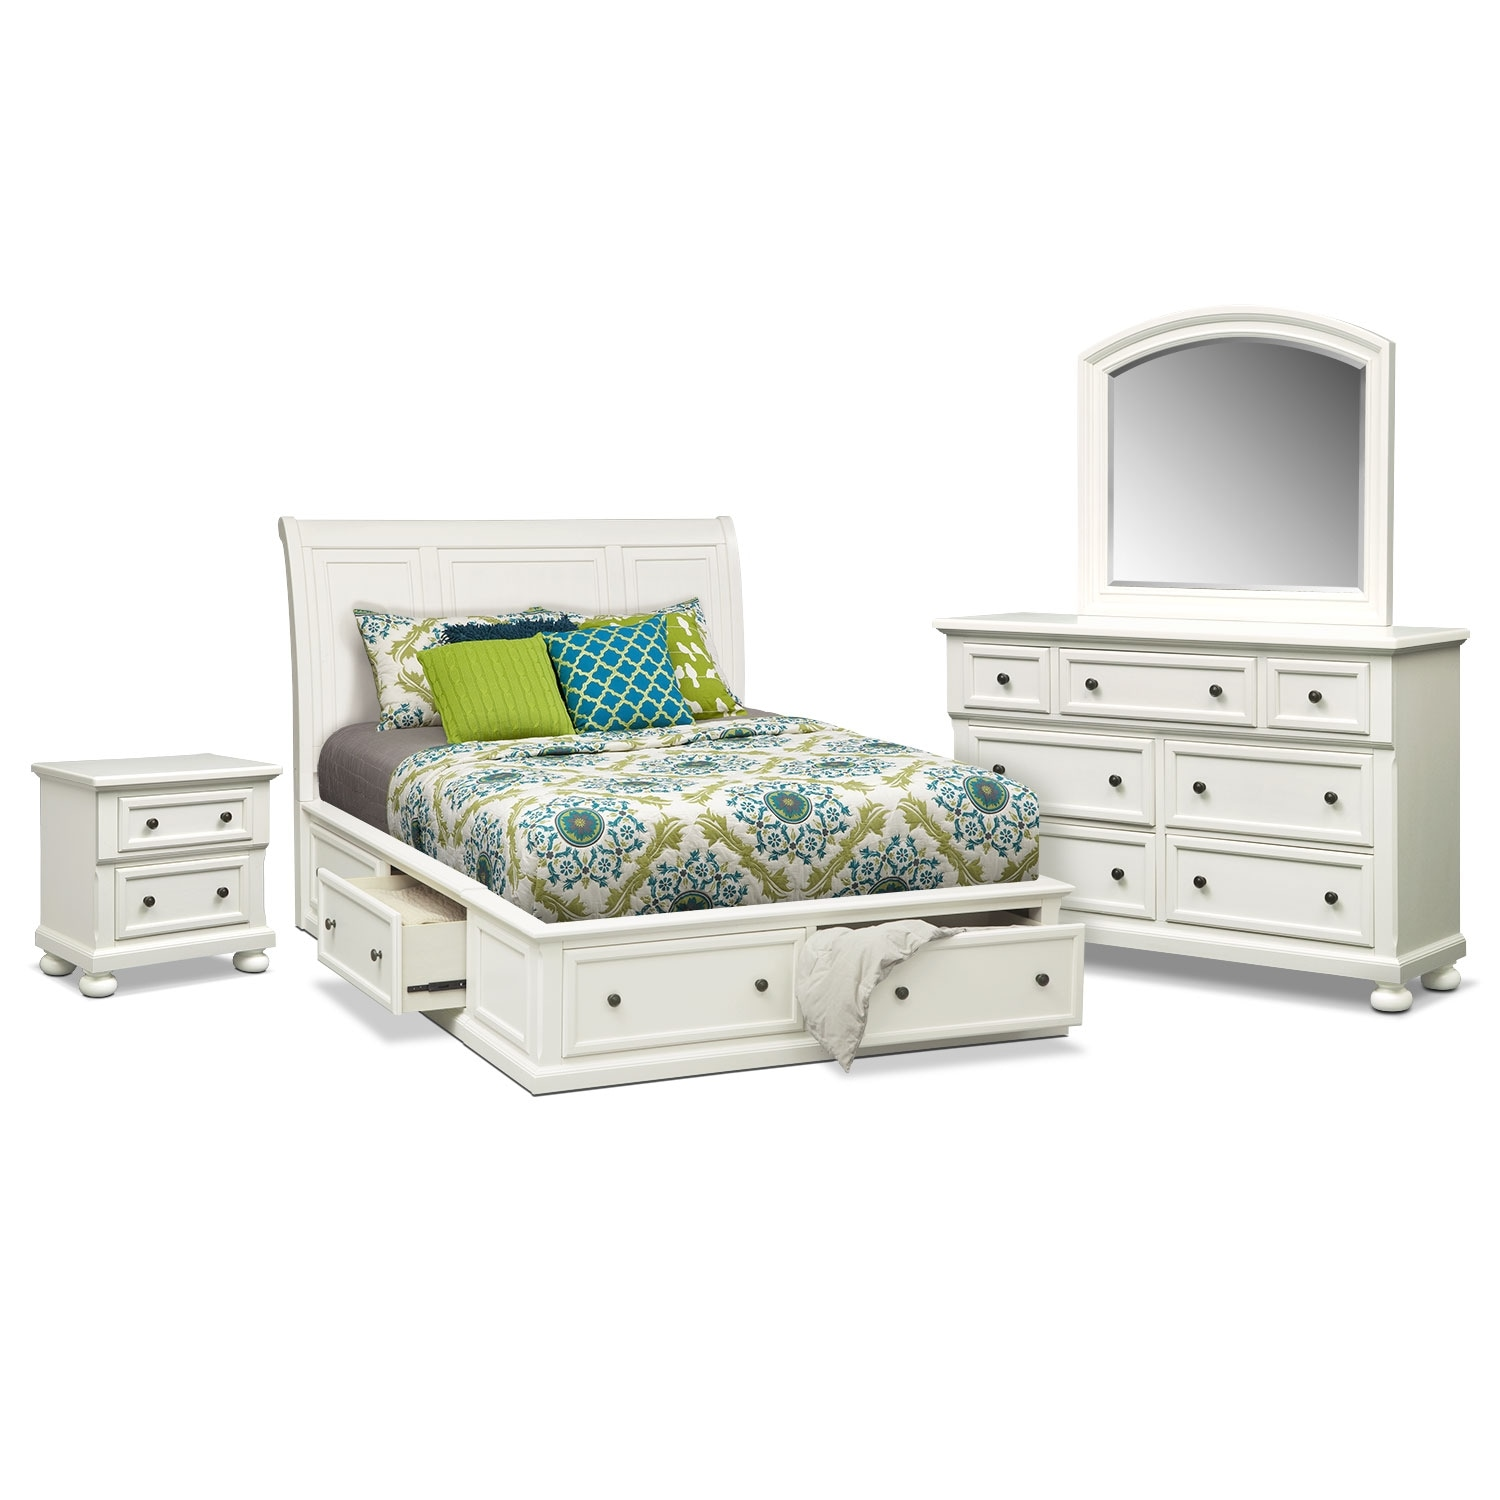 Storage Bedroom Furniture: Hanover 6-Piece Queen Storage Bedroom Set